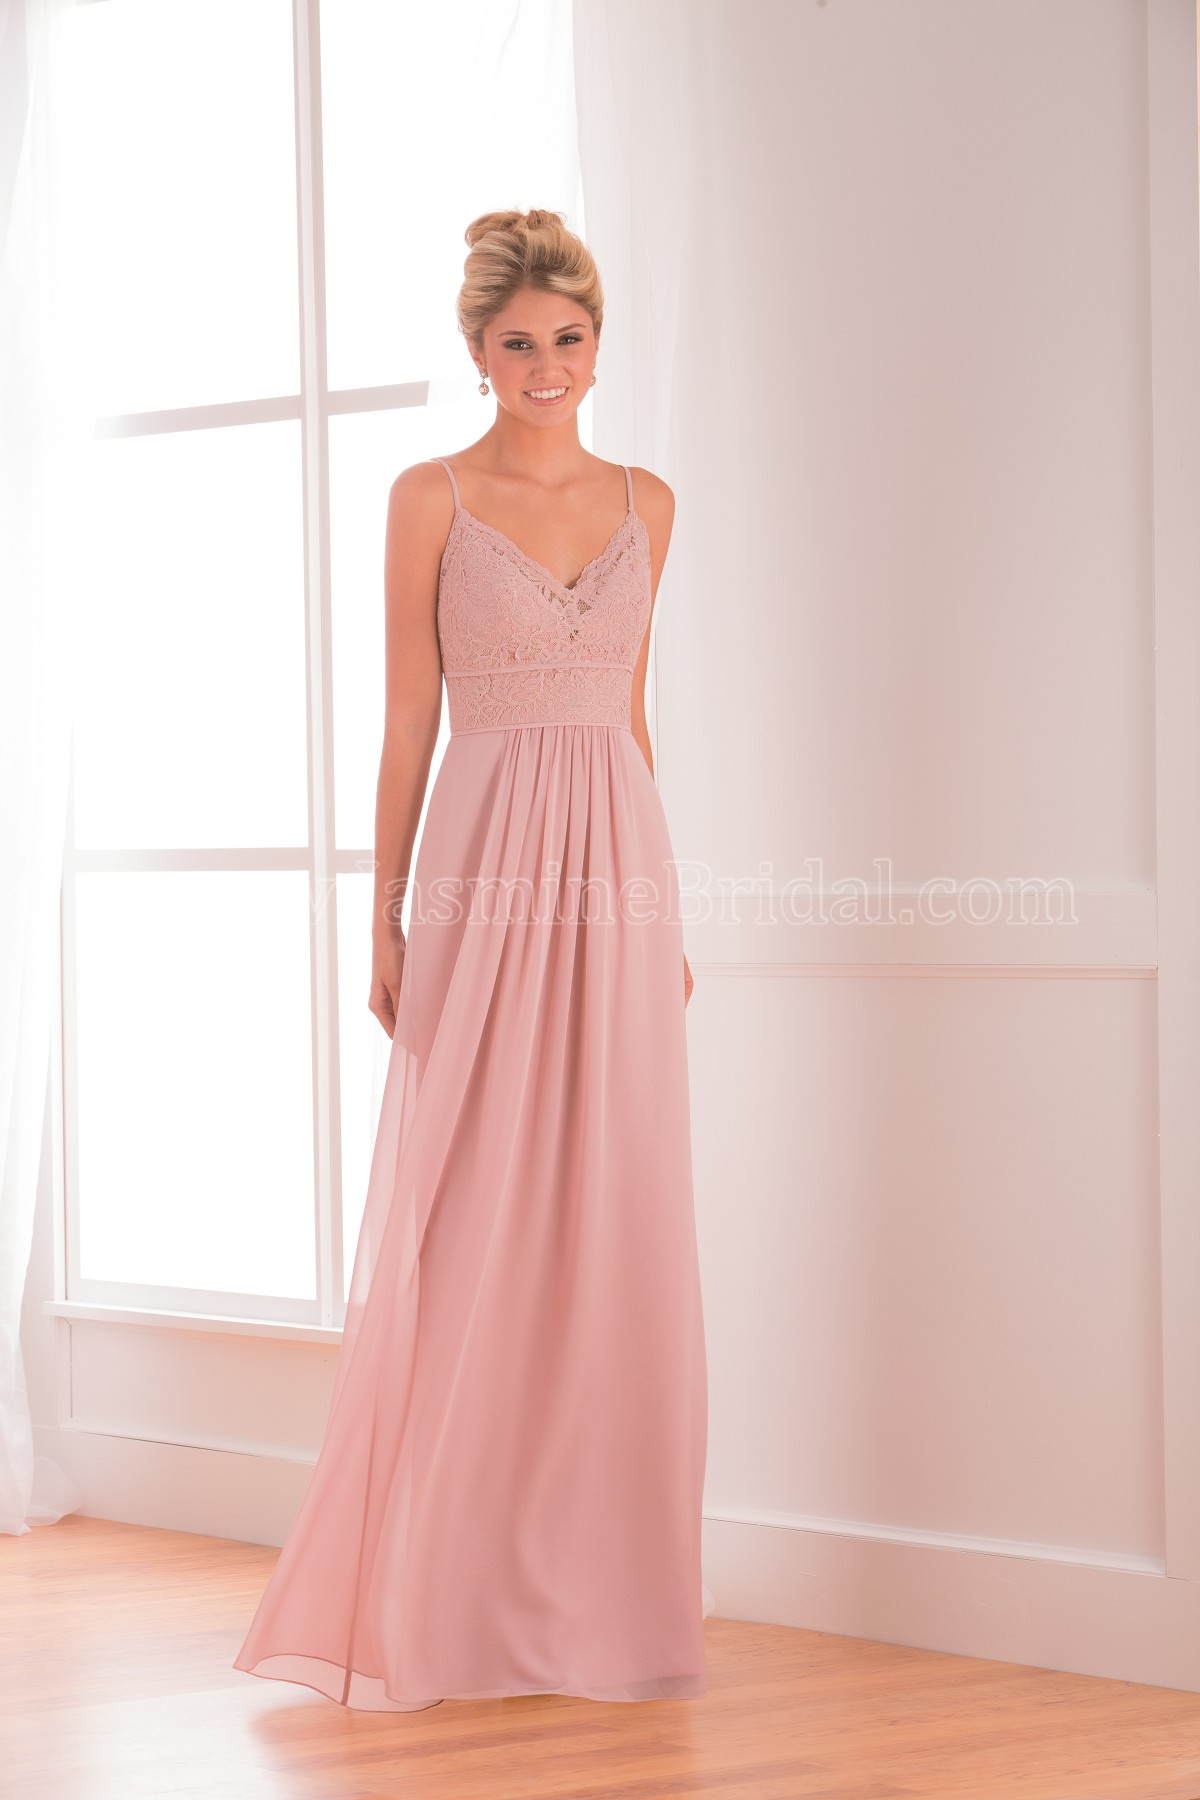 fb3690a51916 B173018 Long V-neck Lace & Poly Chiffon Bridesmaid Dress